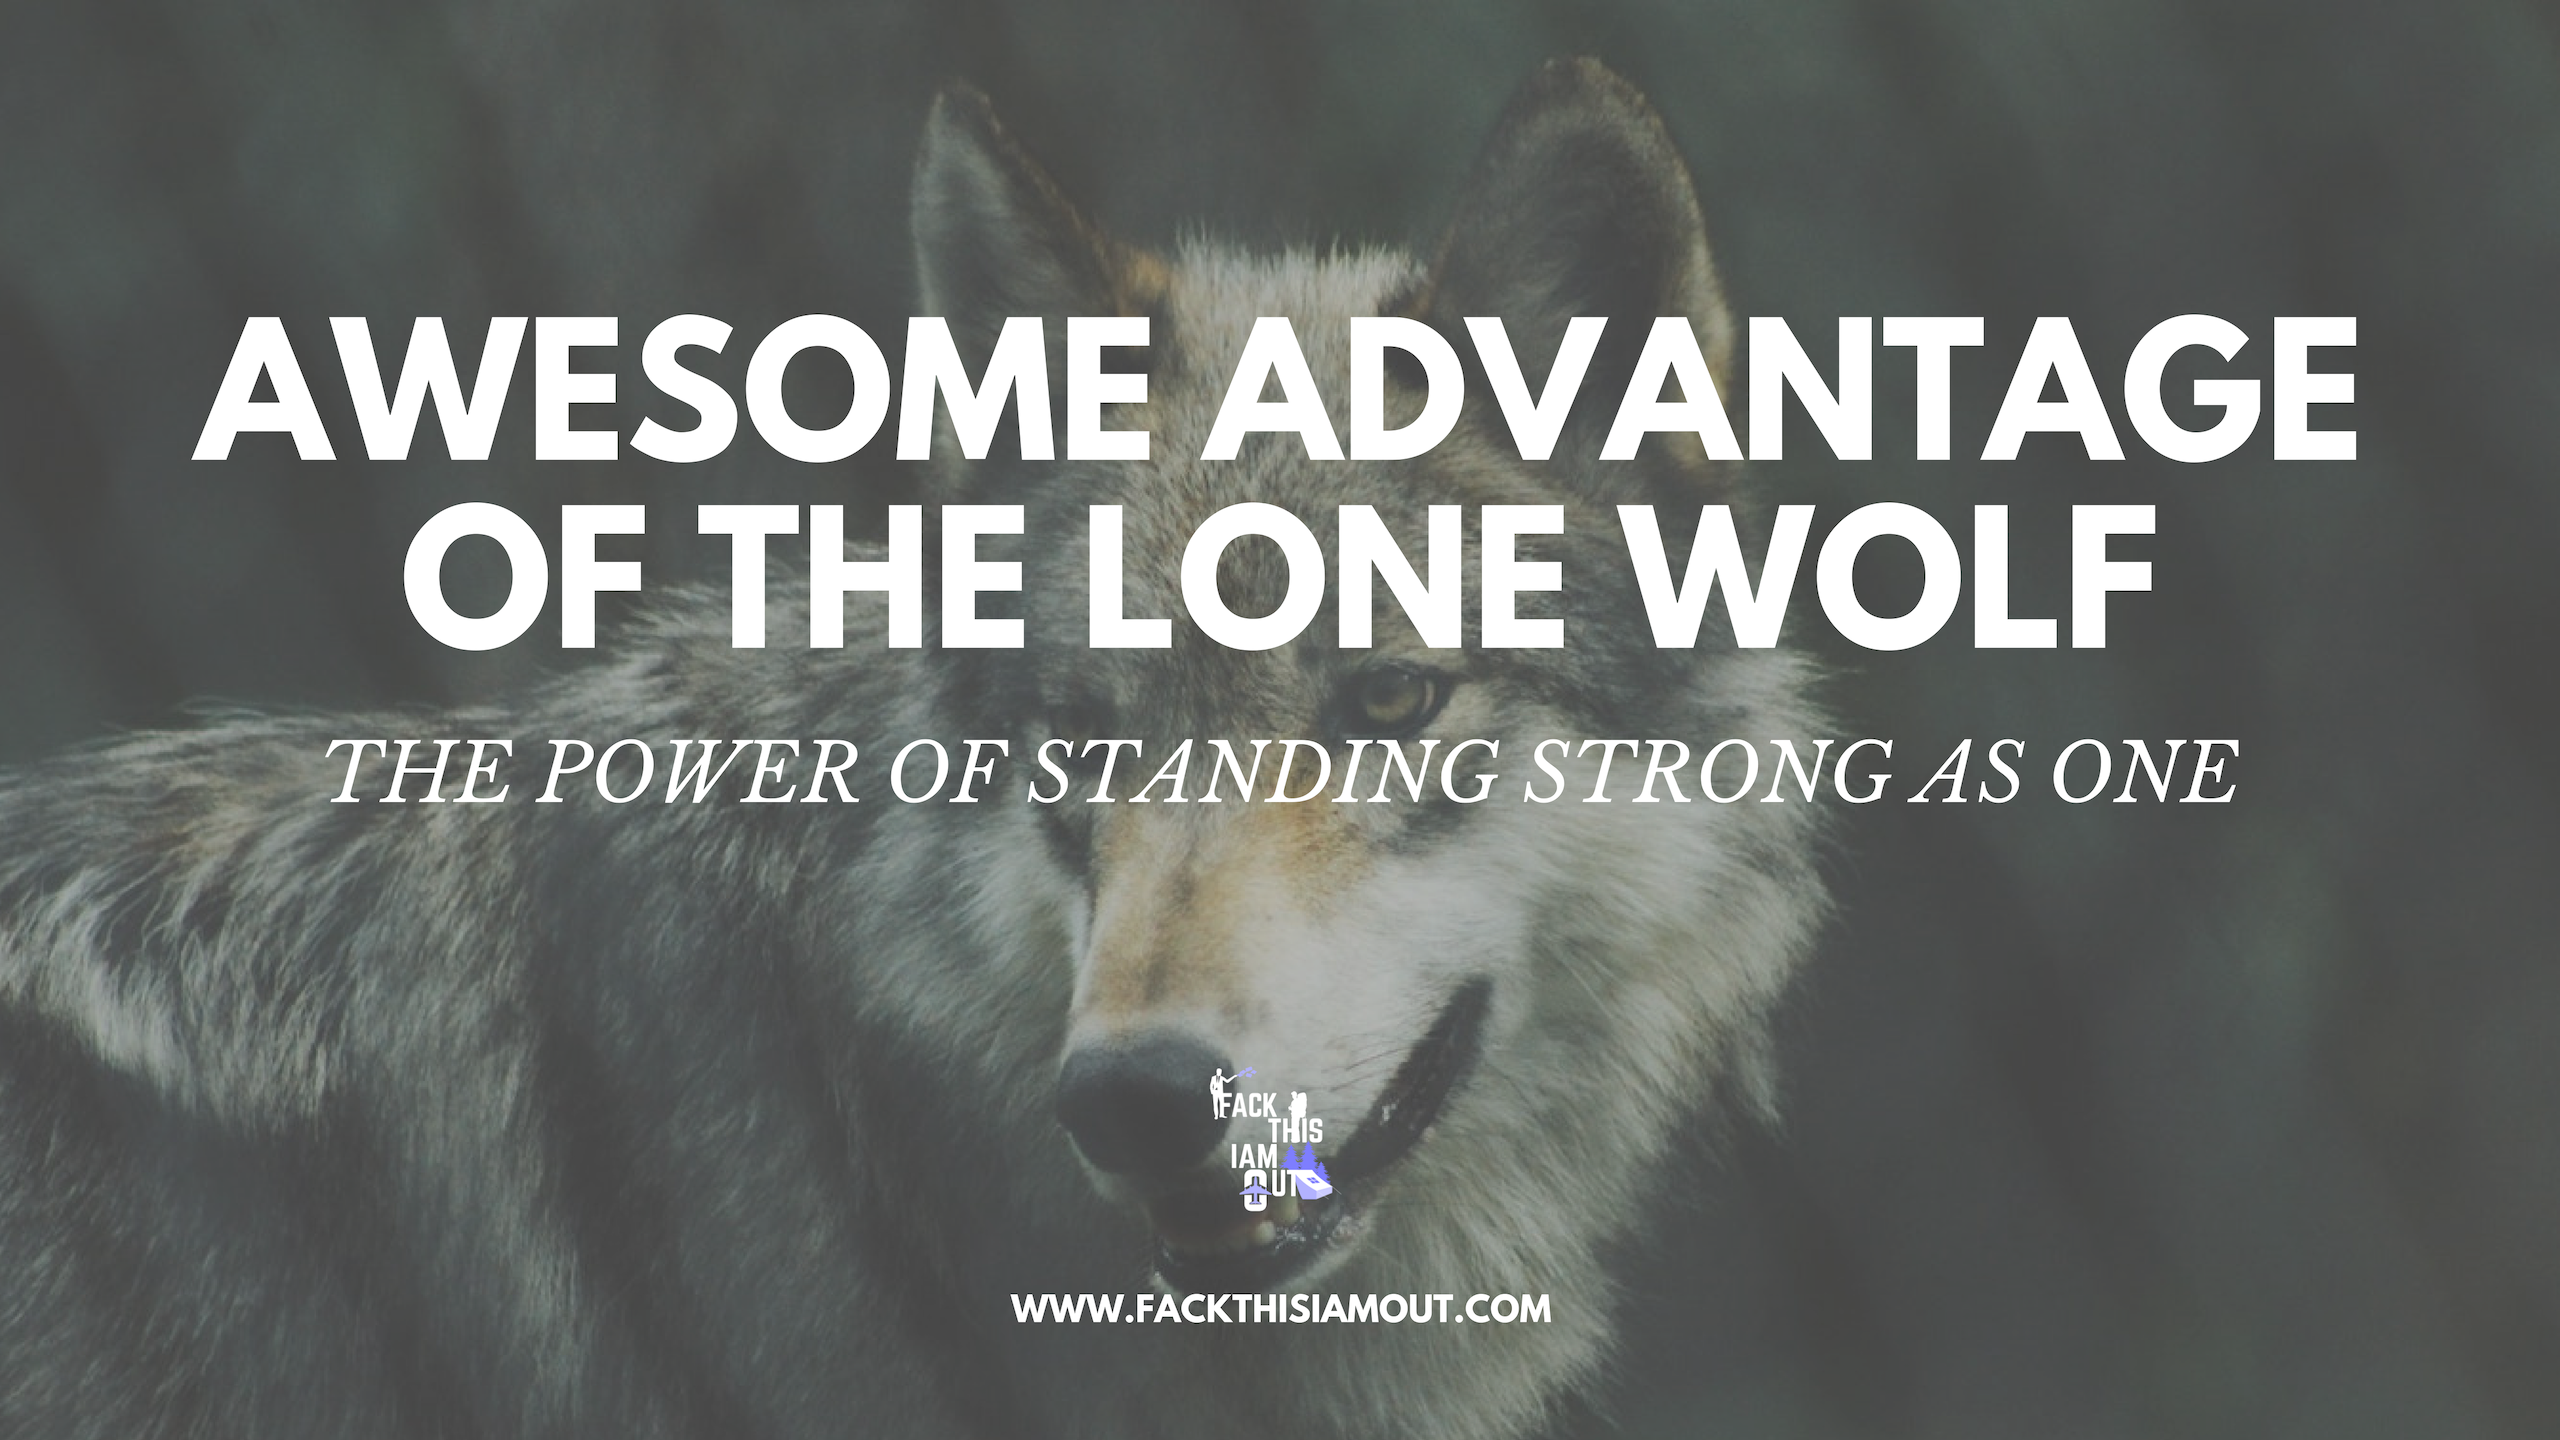 AWESOME ADVANTAGE OF THE LONE WOLF – THE POWER OF STANDING STRONG AS ONE